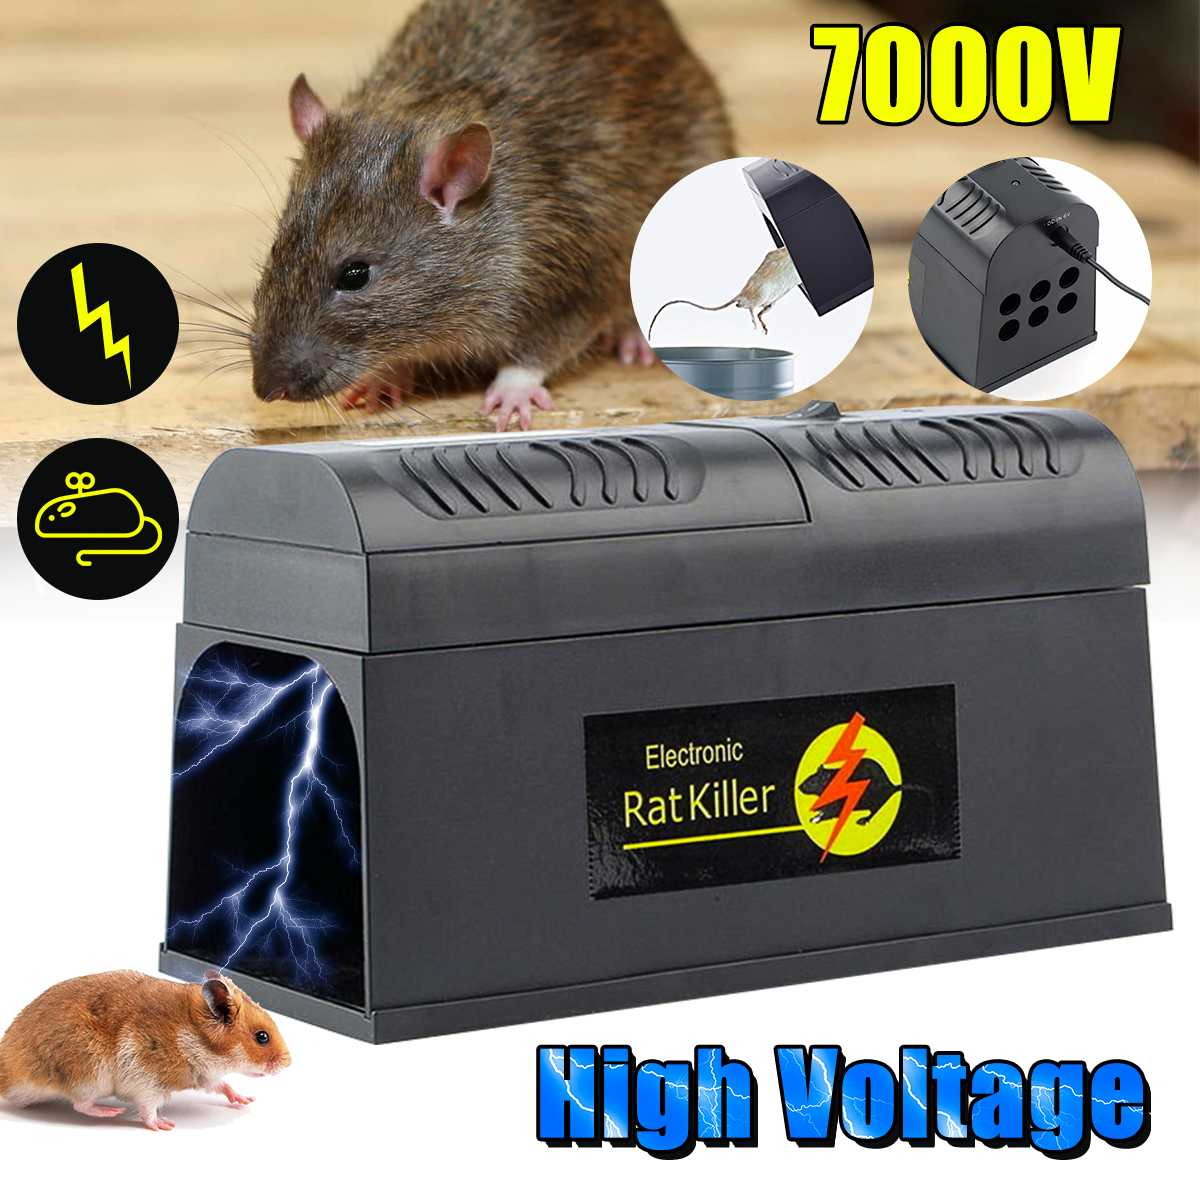 EU/US/UK Plug Electric Mouse Rat Trap Mouse Killer Electronic Rodent Mouse Zapper Trap Humane Rodent Mousetrap Device